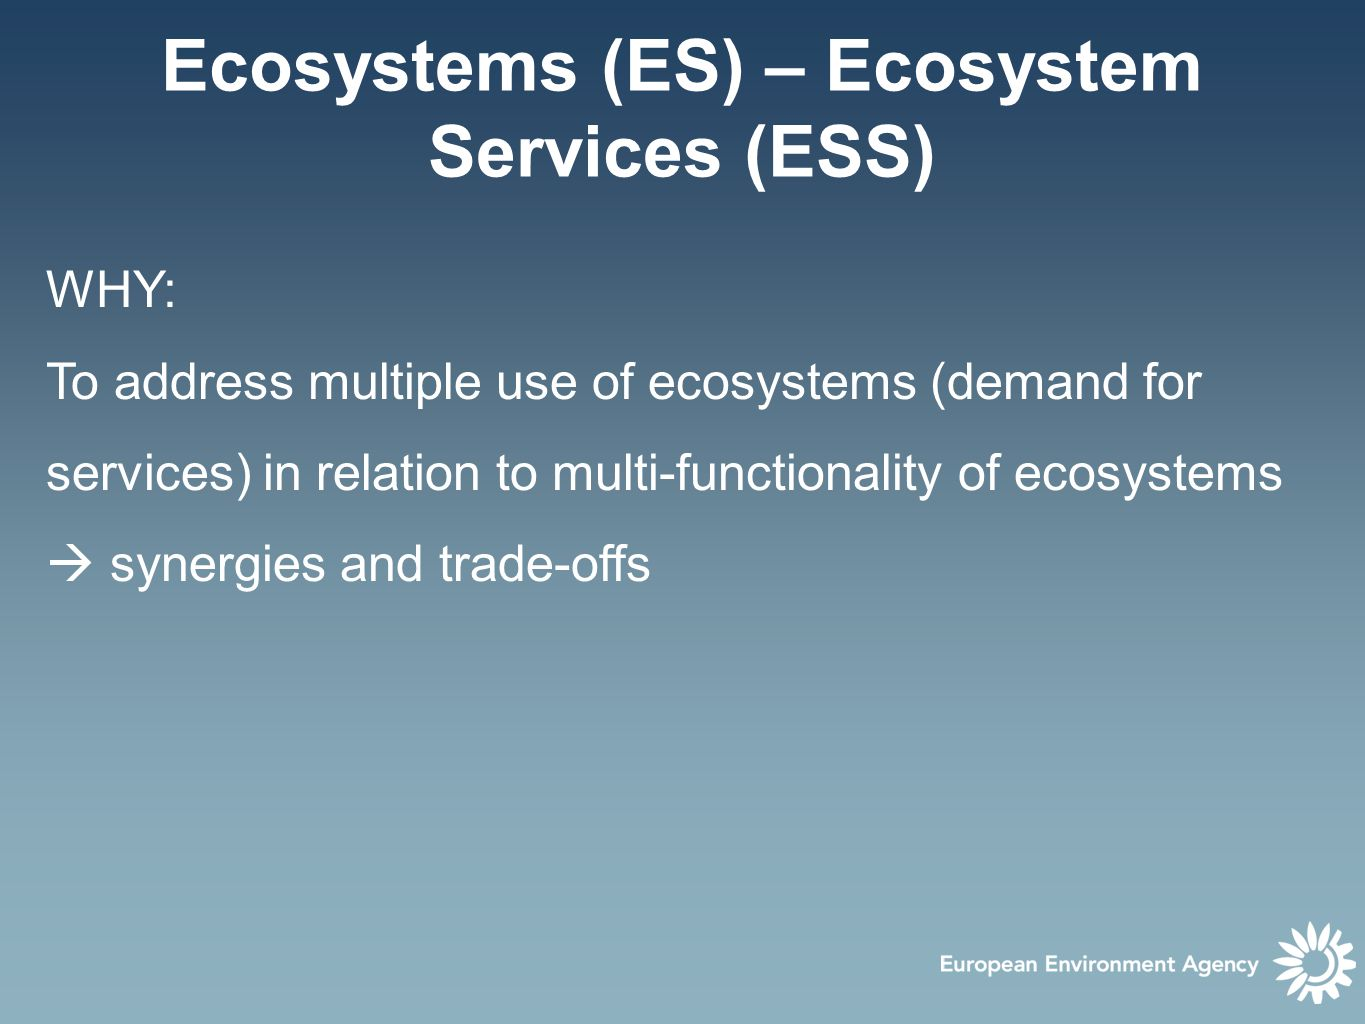 Ecosystems (ES) – Ecosystem Services (ESS) WHY: To address multiple use of ecosystems (demand for services) in relation to multi-functionality of ecosystems  synergies and trade-offs